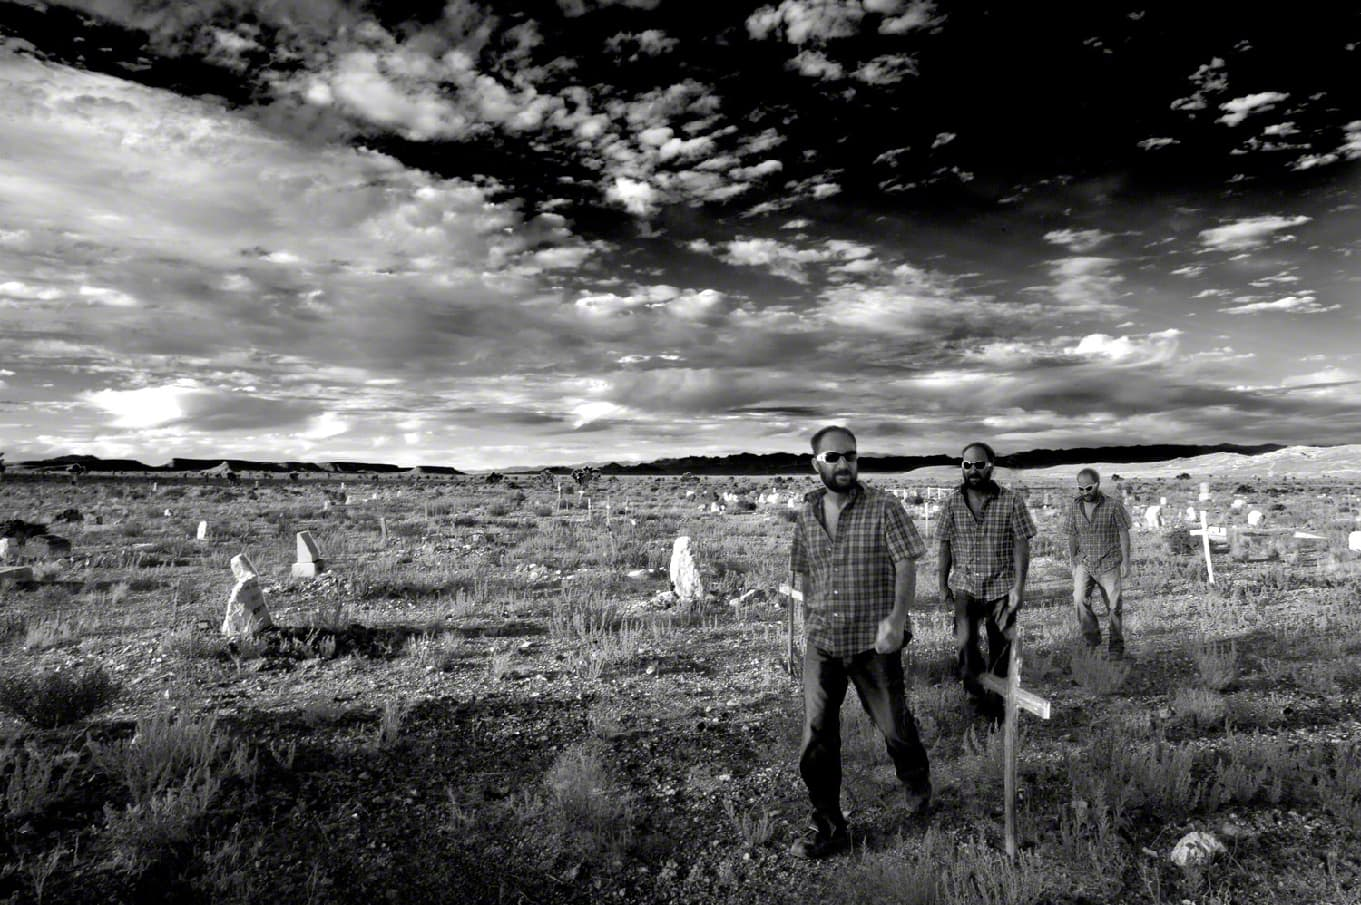 evolution of sorg, graveyard, goldfield, nevada, skjames, 2012